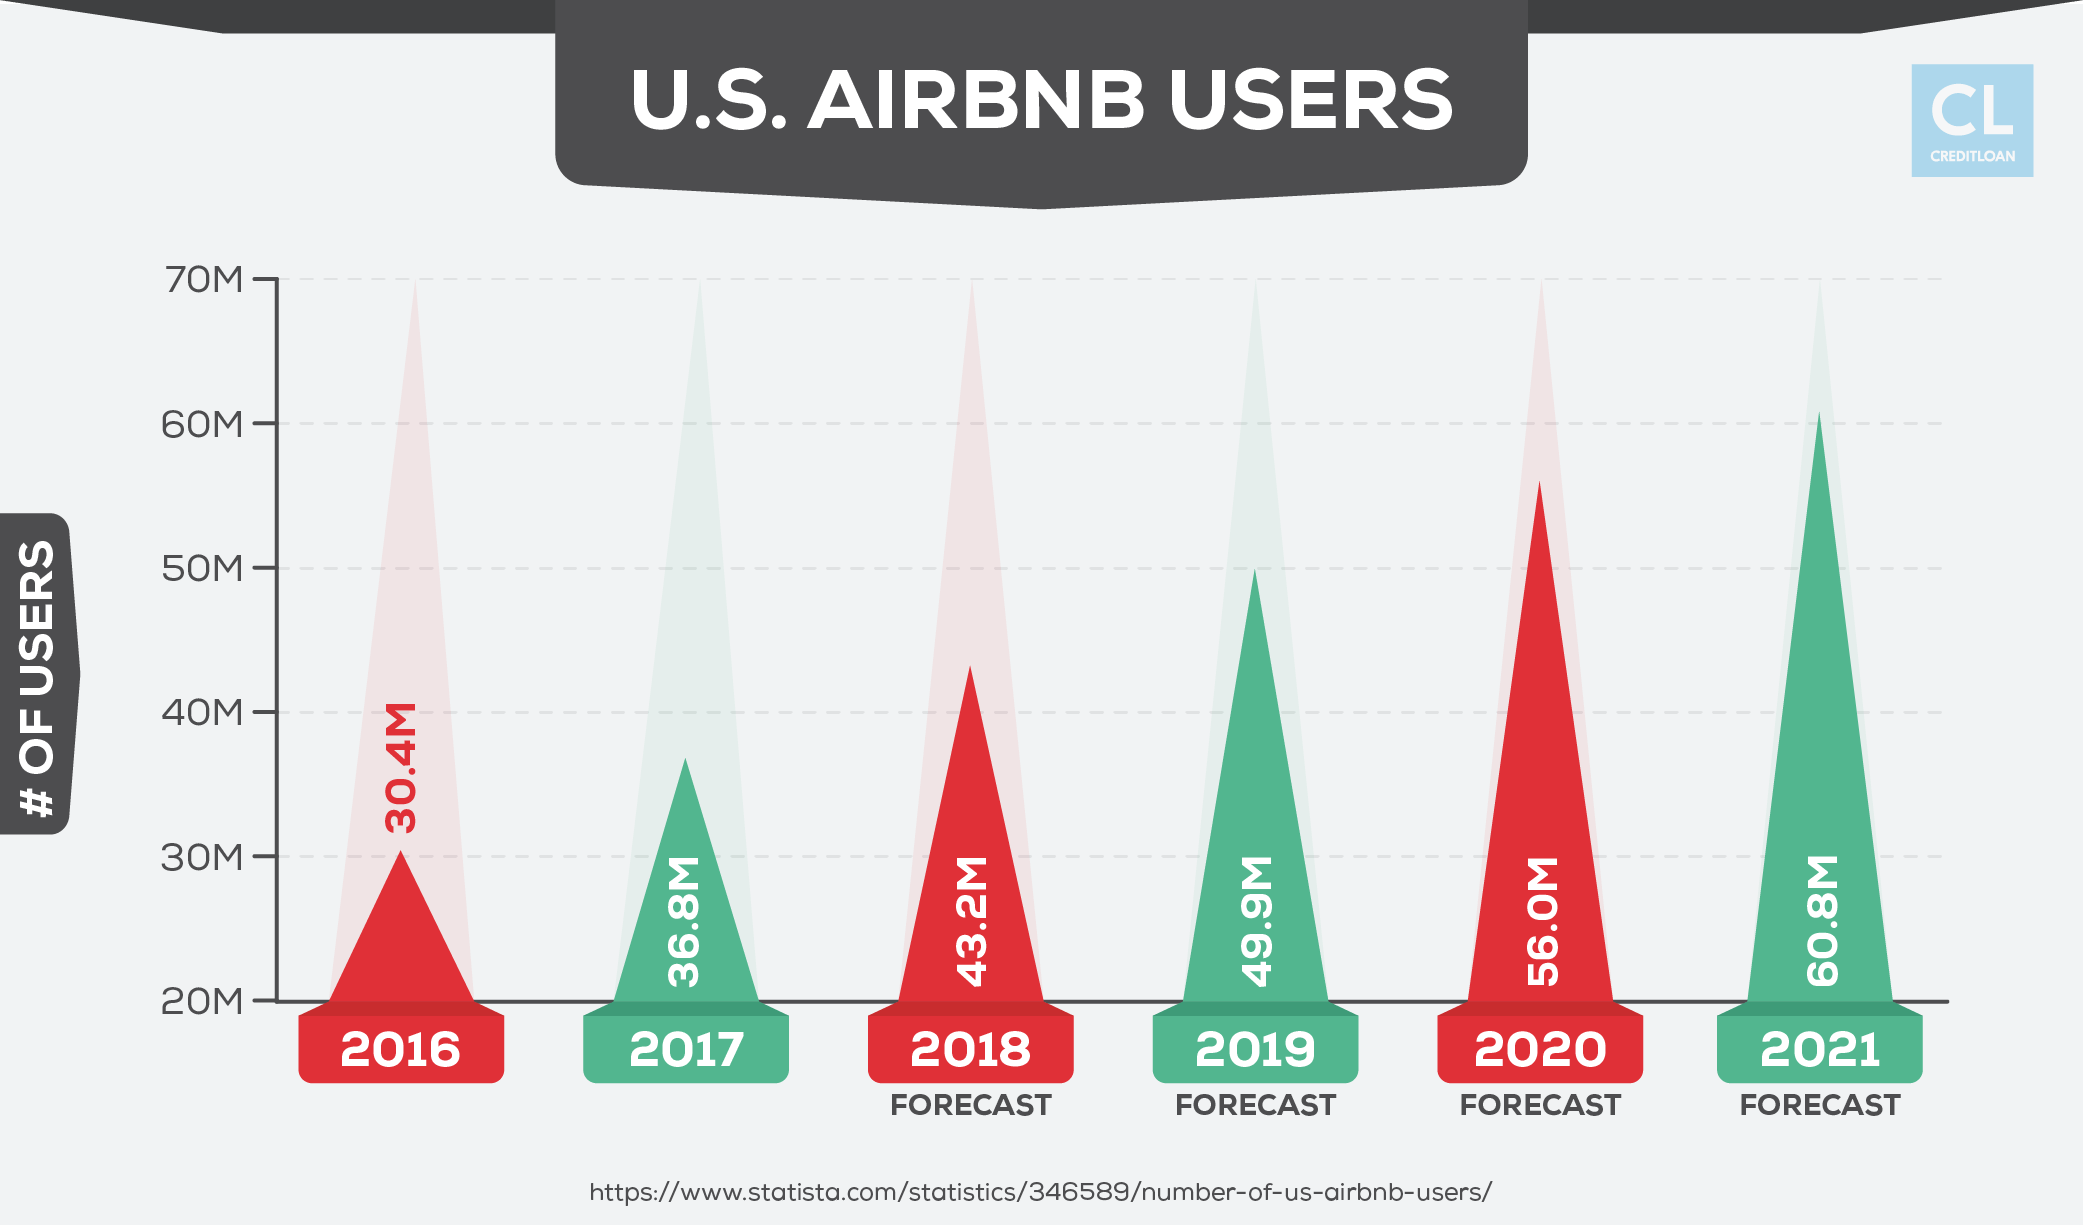 U.S. Airbnb Users from 2016-2021